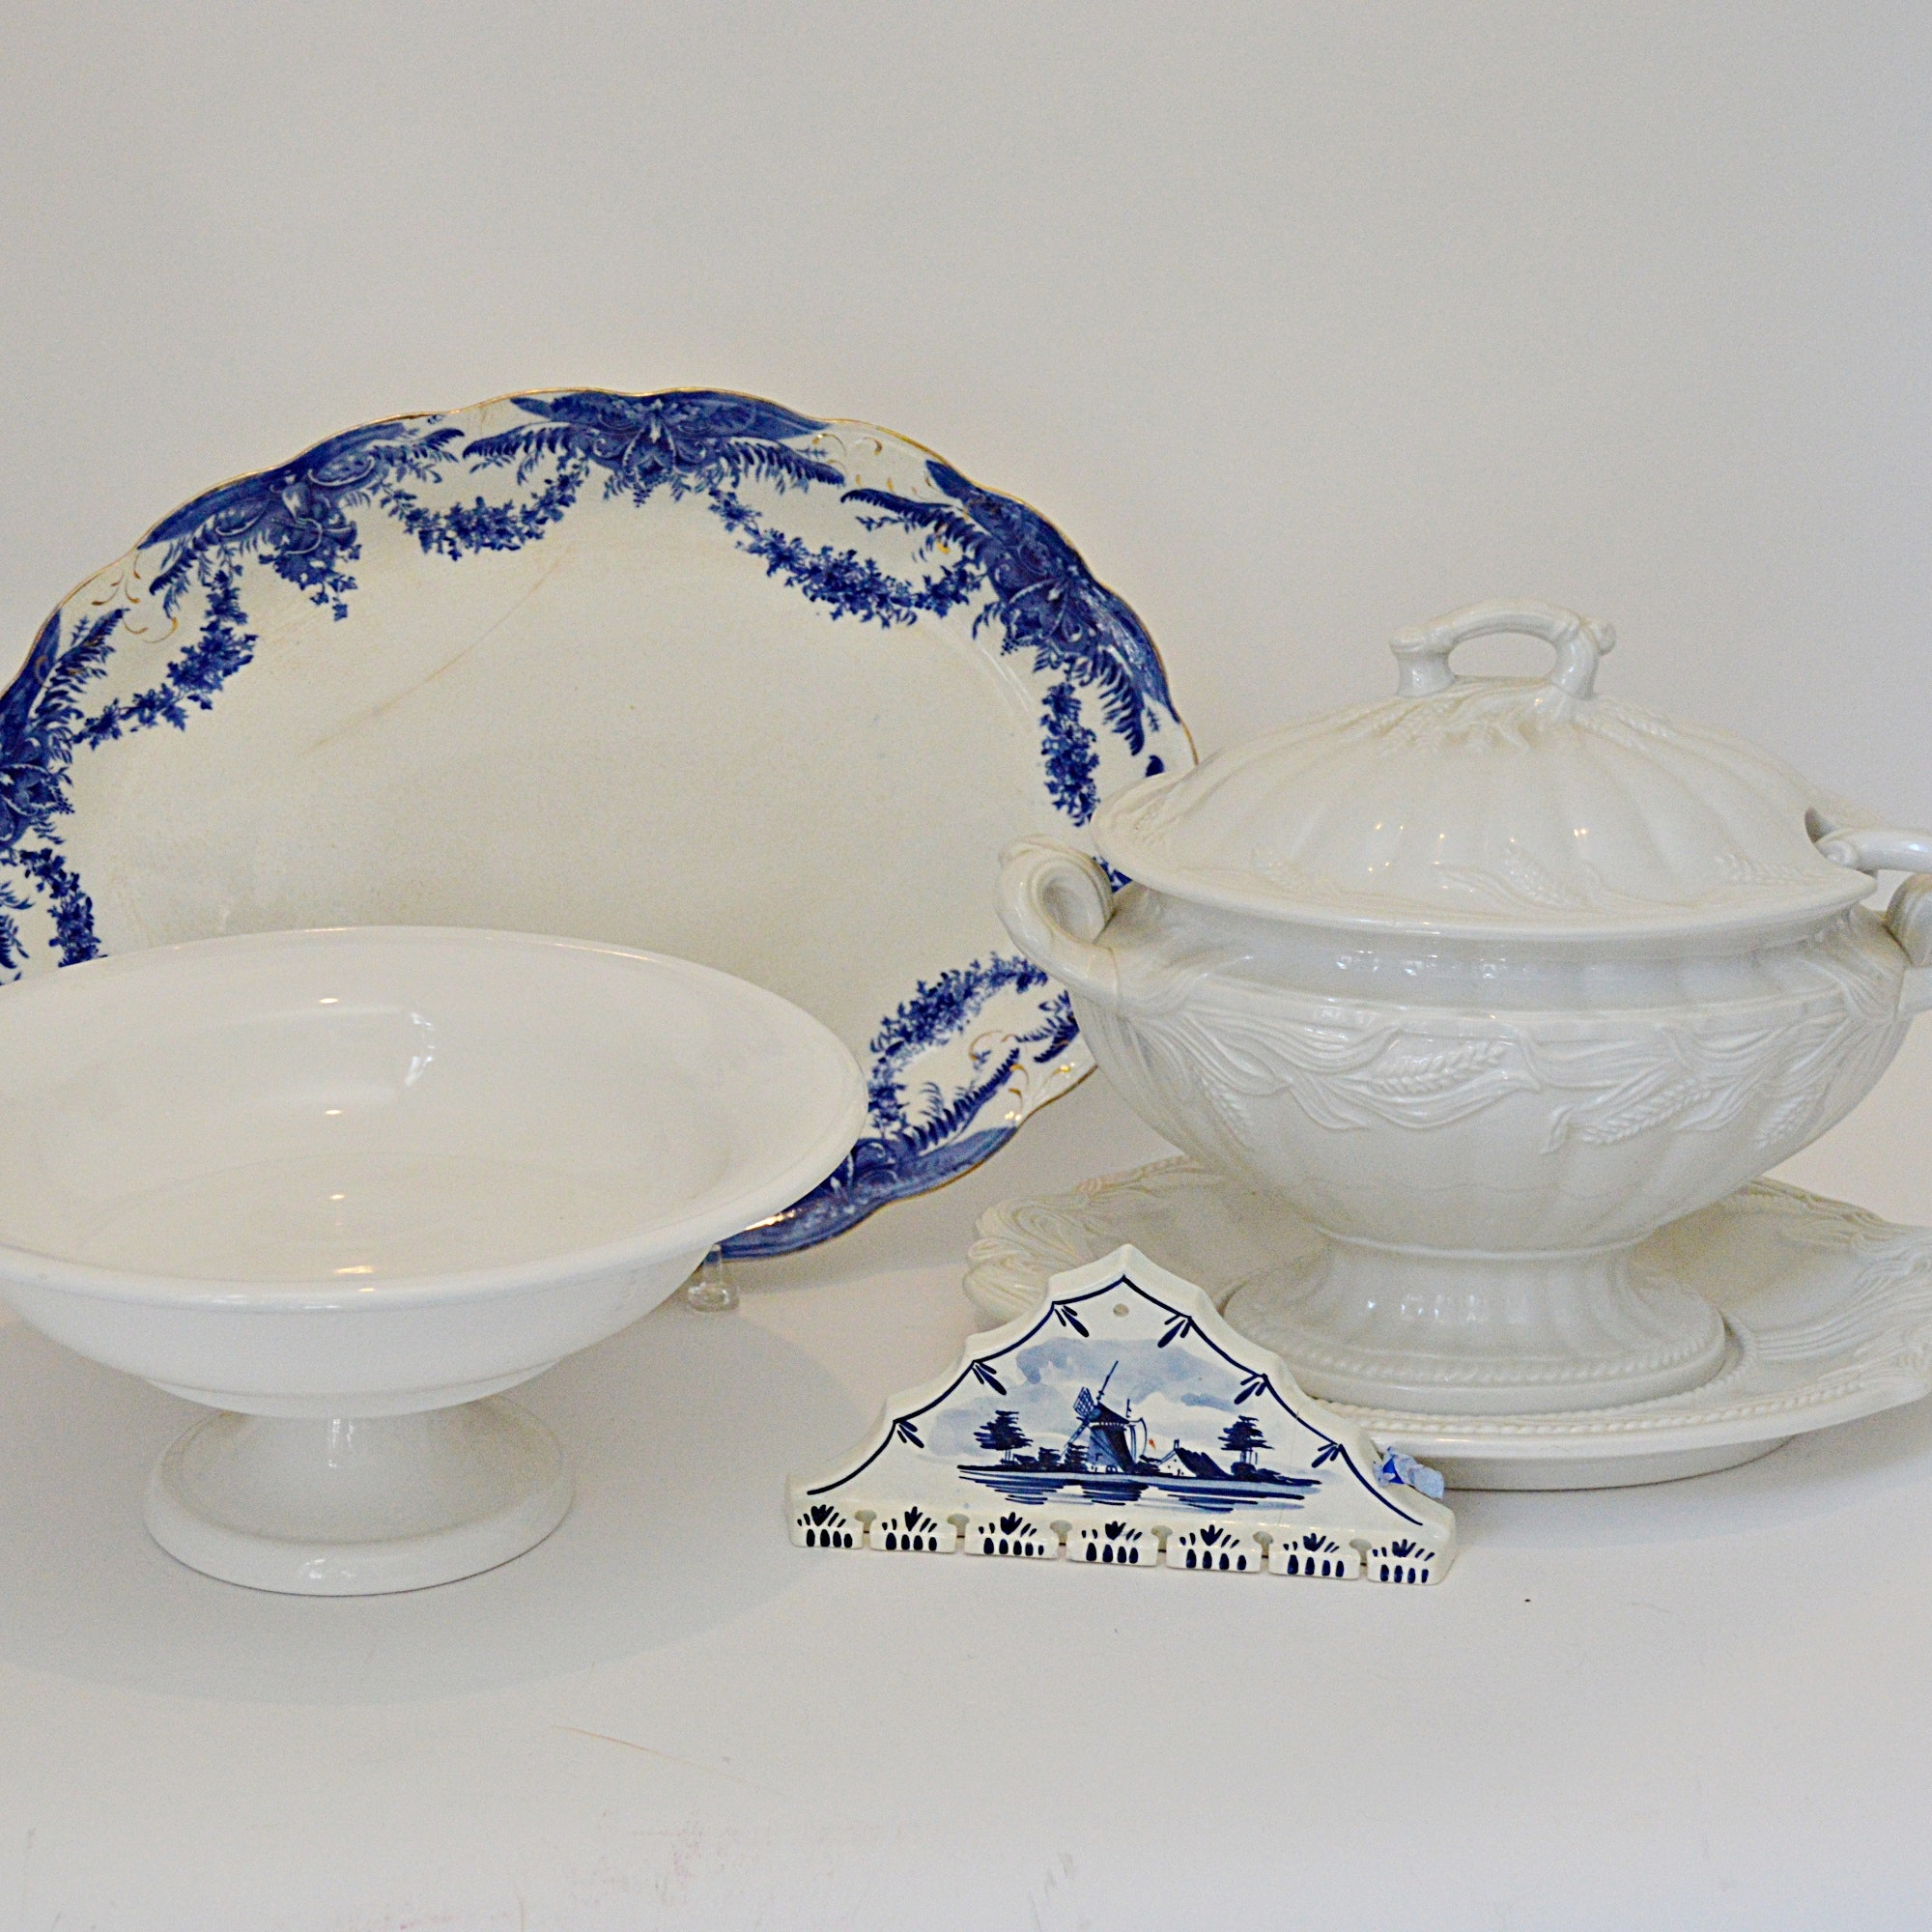 Antique Porcelain Platter and Tureen, White Compote